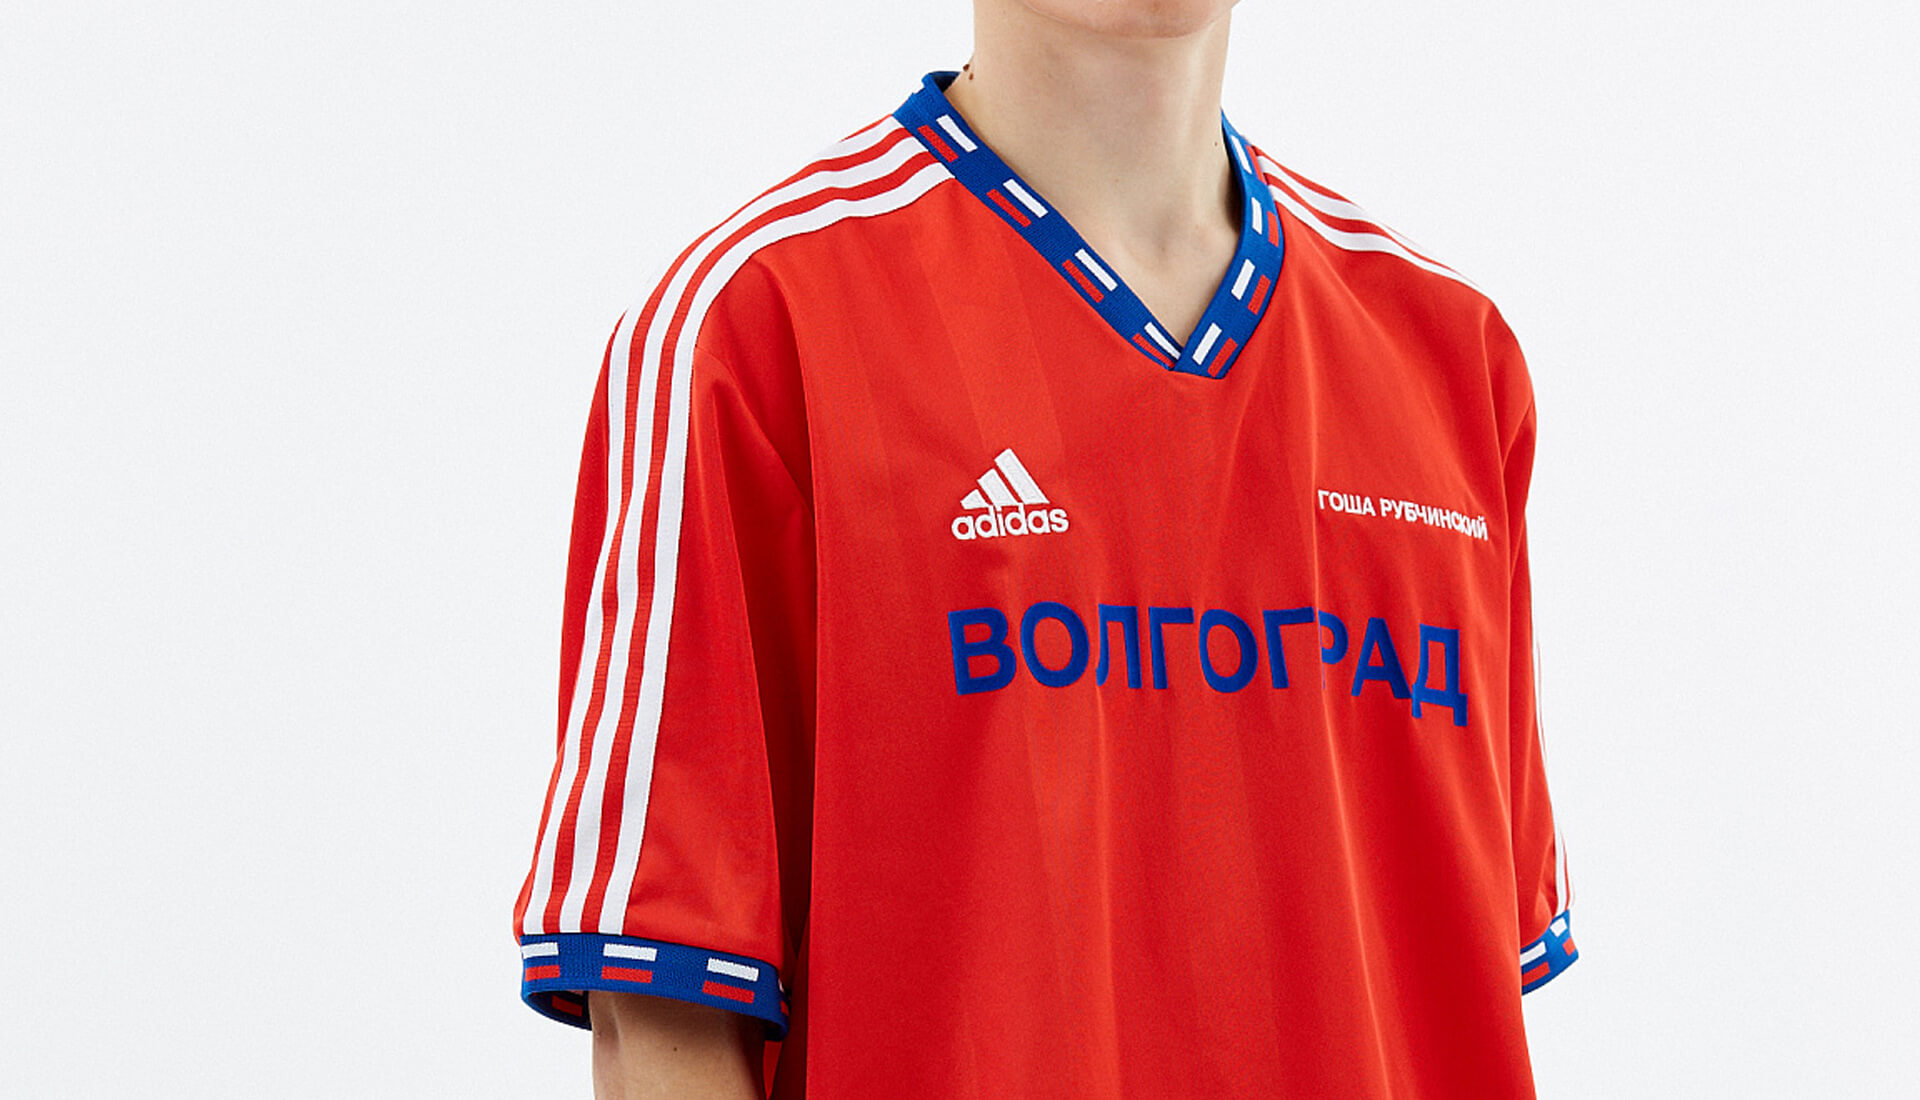 A Complete Look at the Gosha Rubchinskiy x adidas World Cup